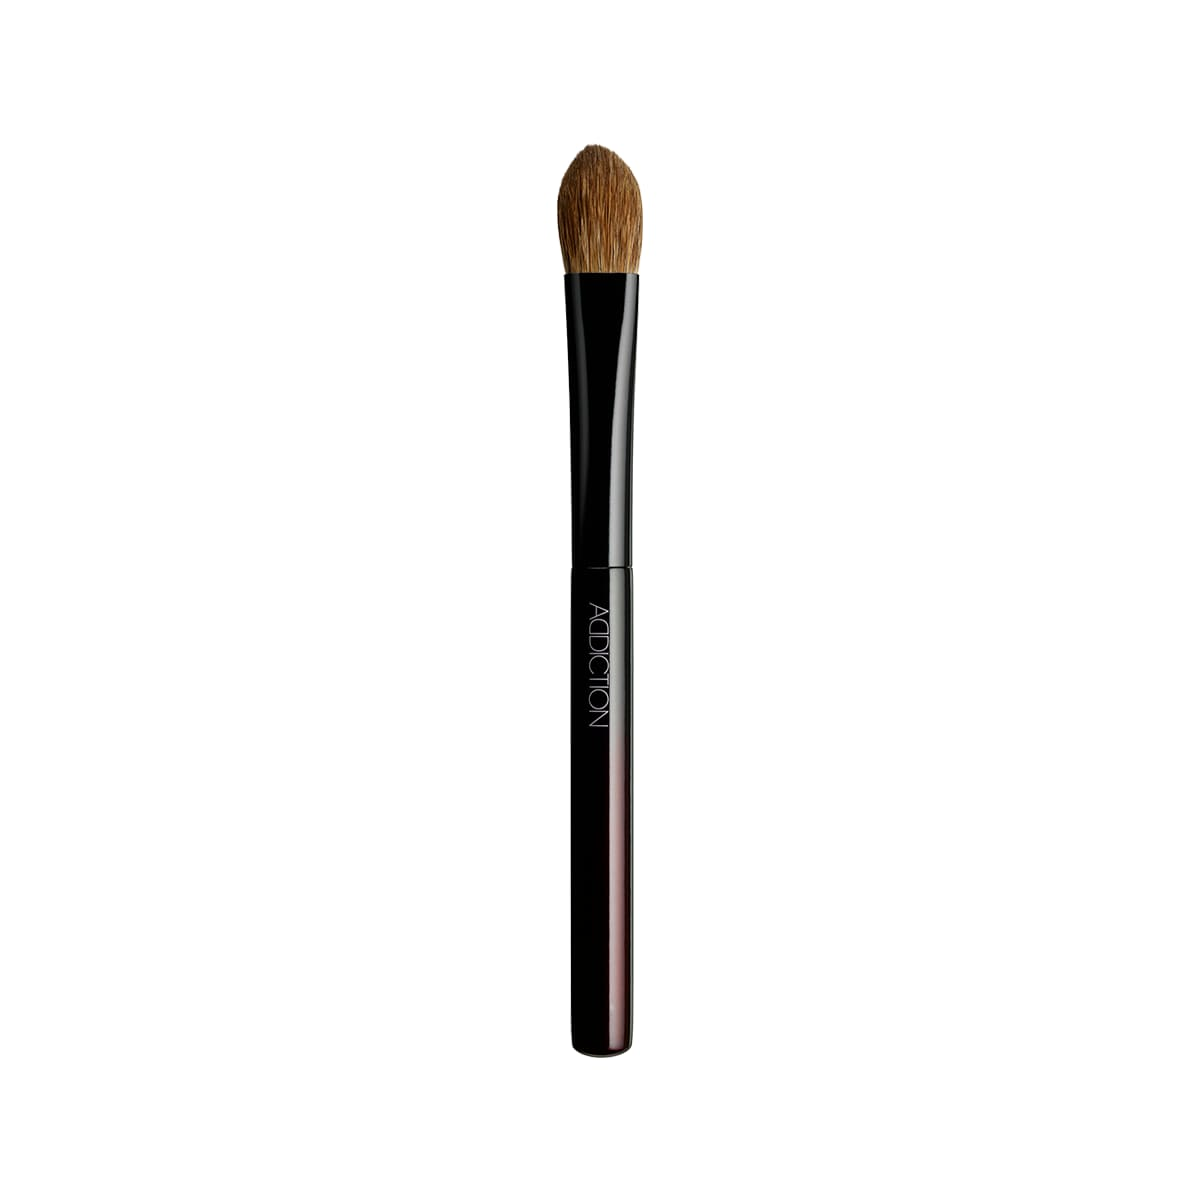 EYESHADOW BRUSH B